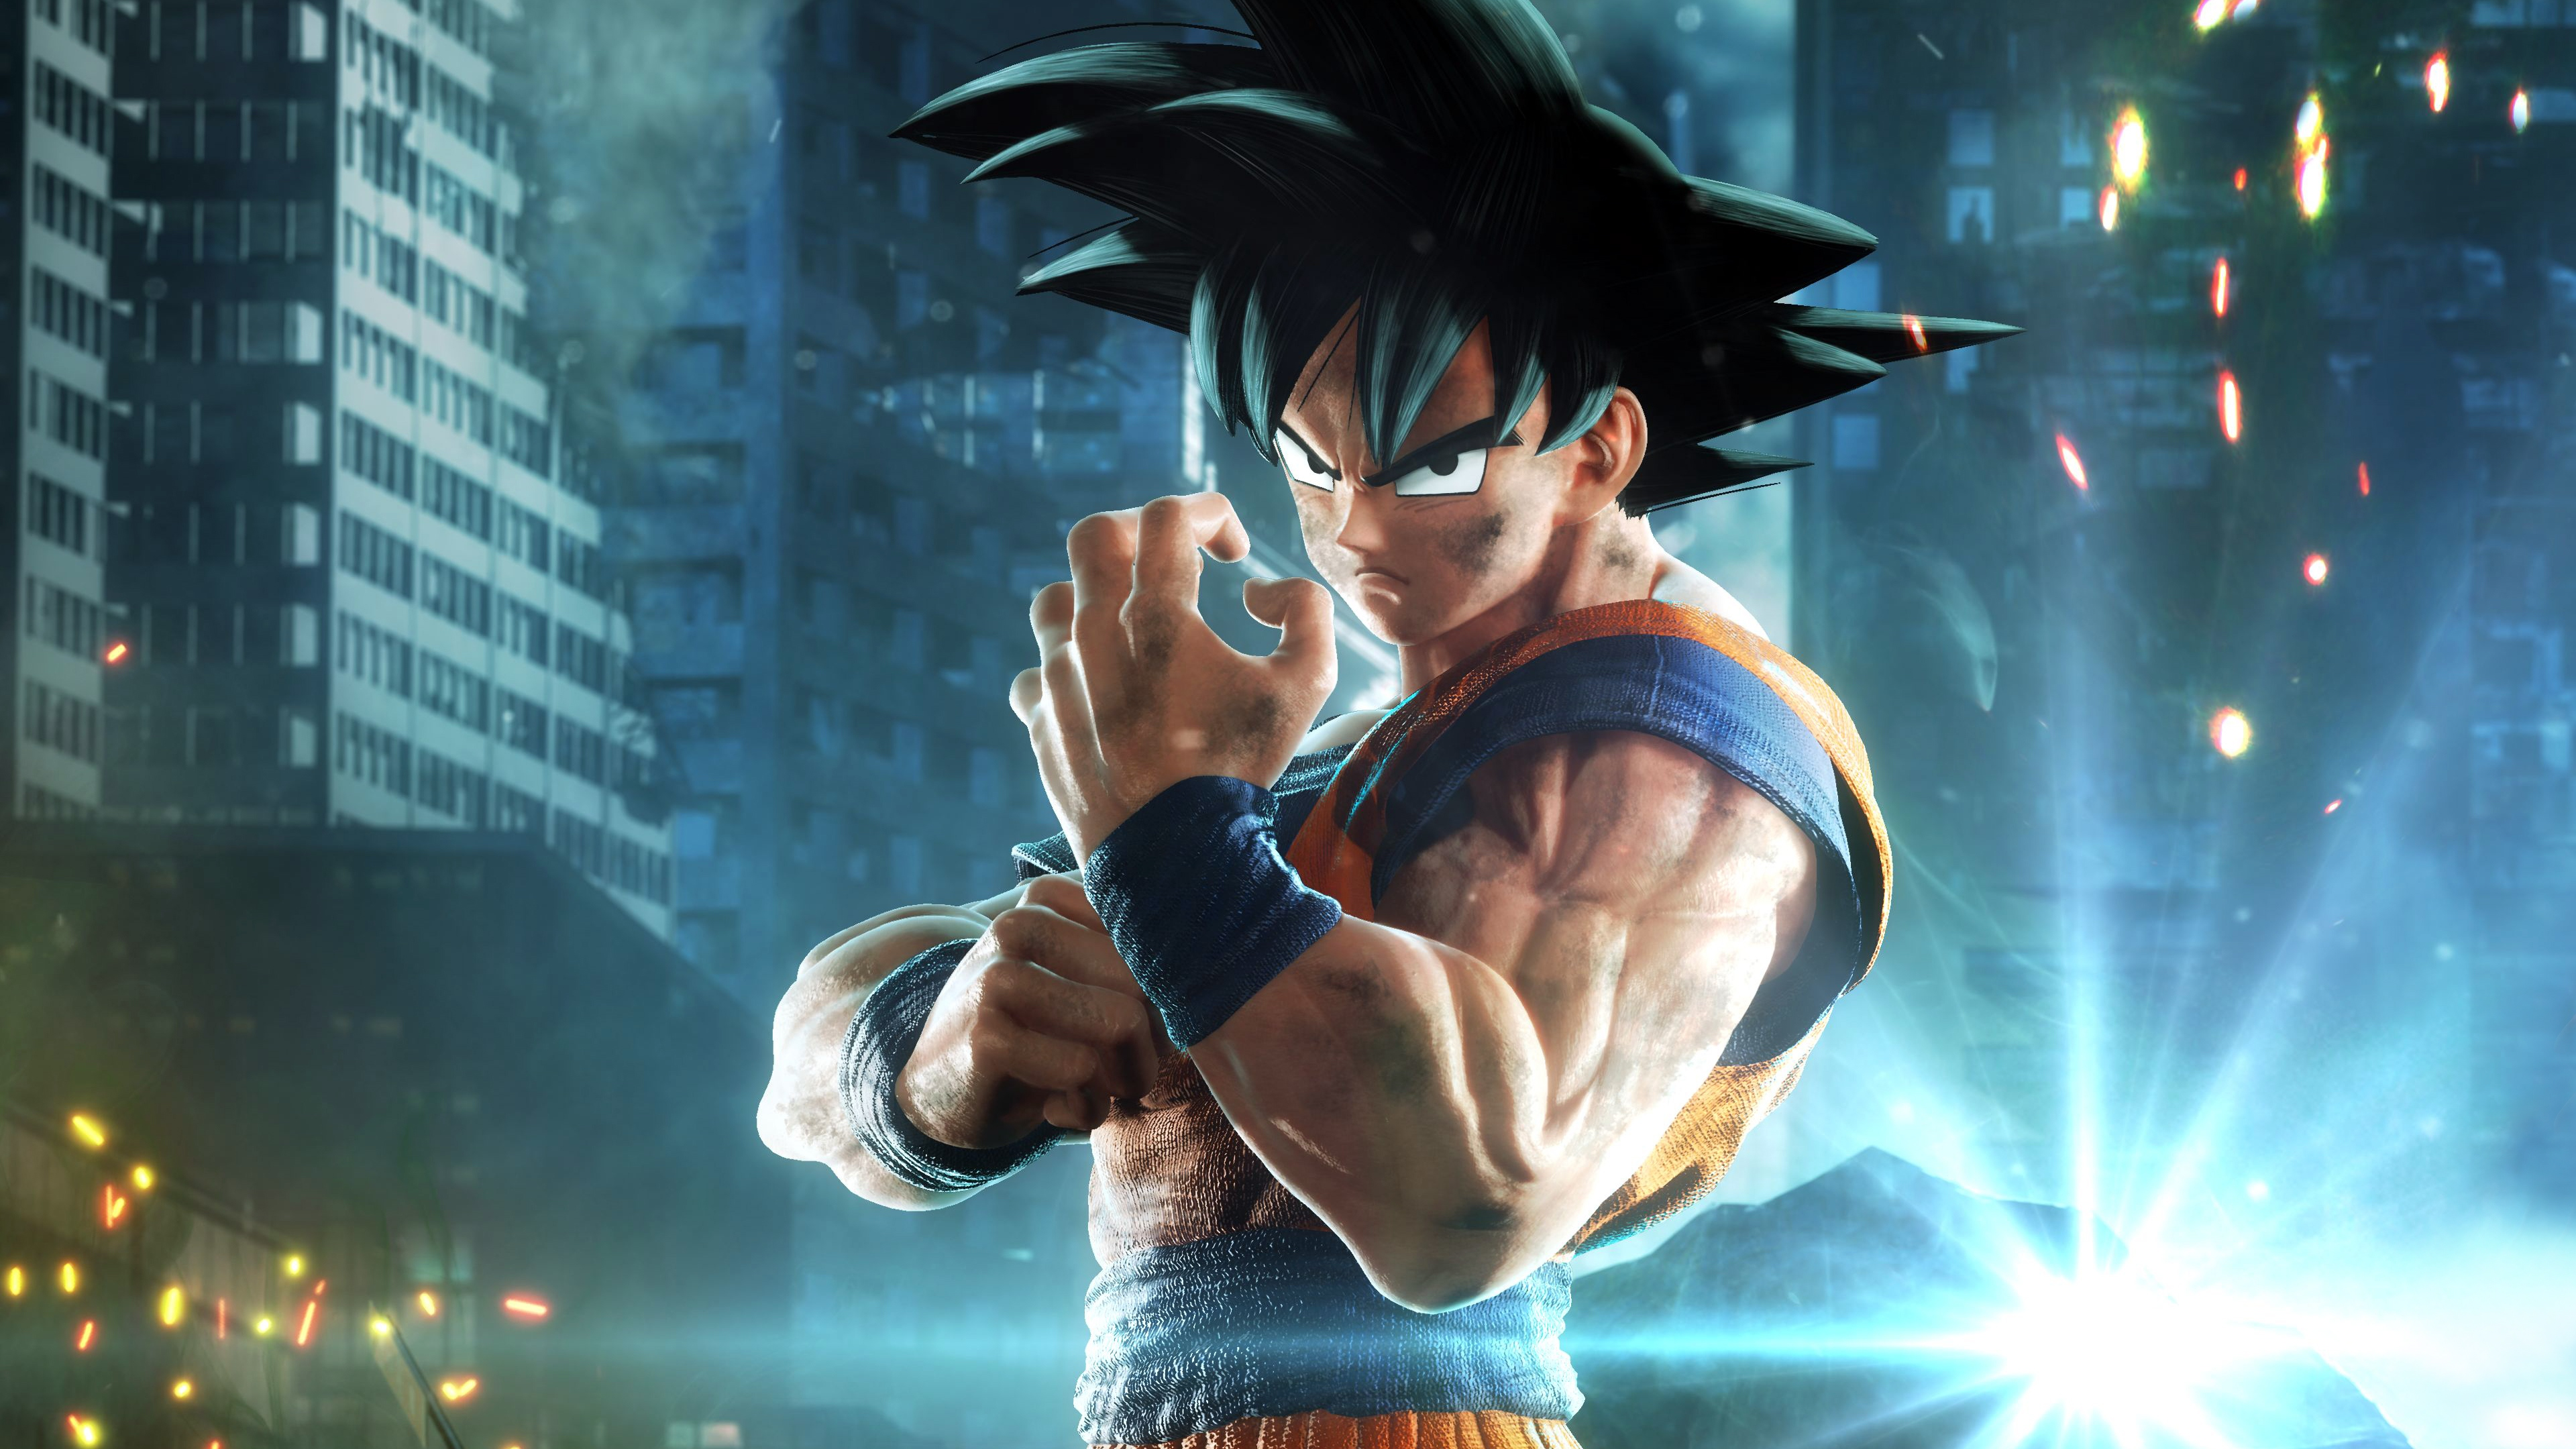 Jump Force Goku 4k Hd Games 4k Wallpapers Images Backgrounds Photos And Pictures